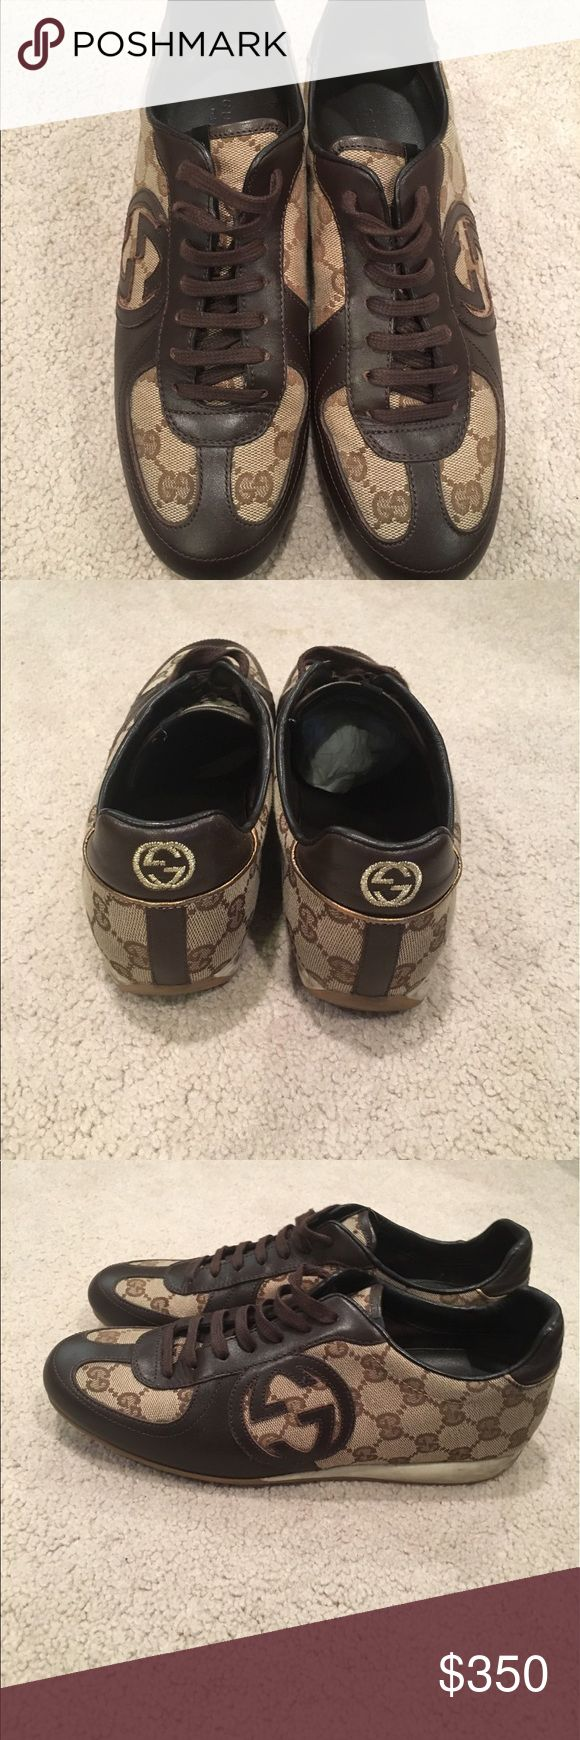 Gucci GG brown leather sneakers Gently used Excellent condition GG brown leather sneakers. Includes original box extra Gucci laces and duster bag Gucci Shoes Sneakers